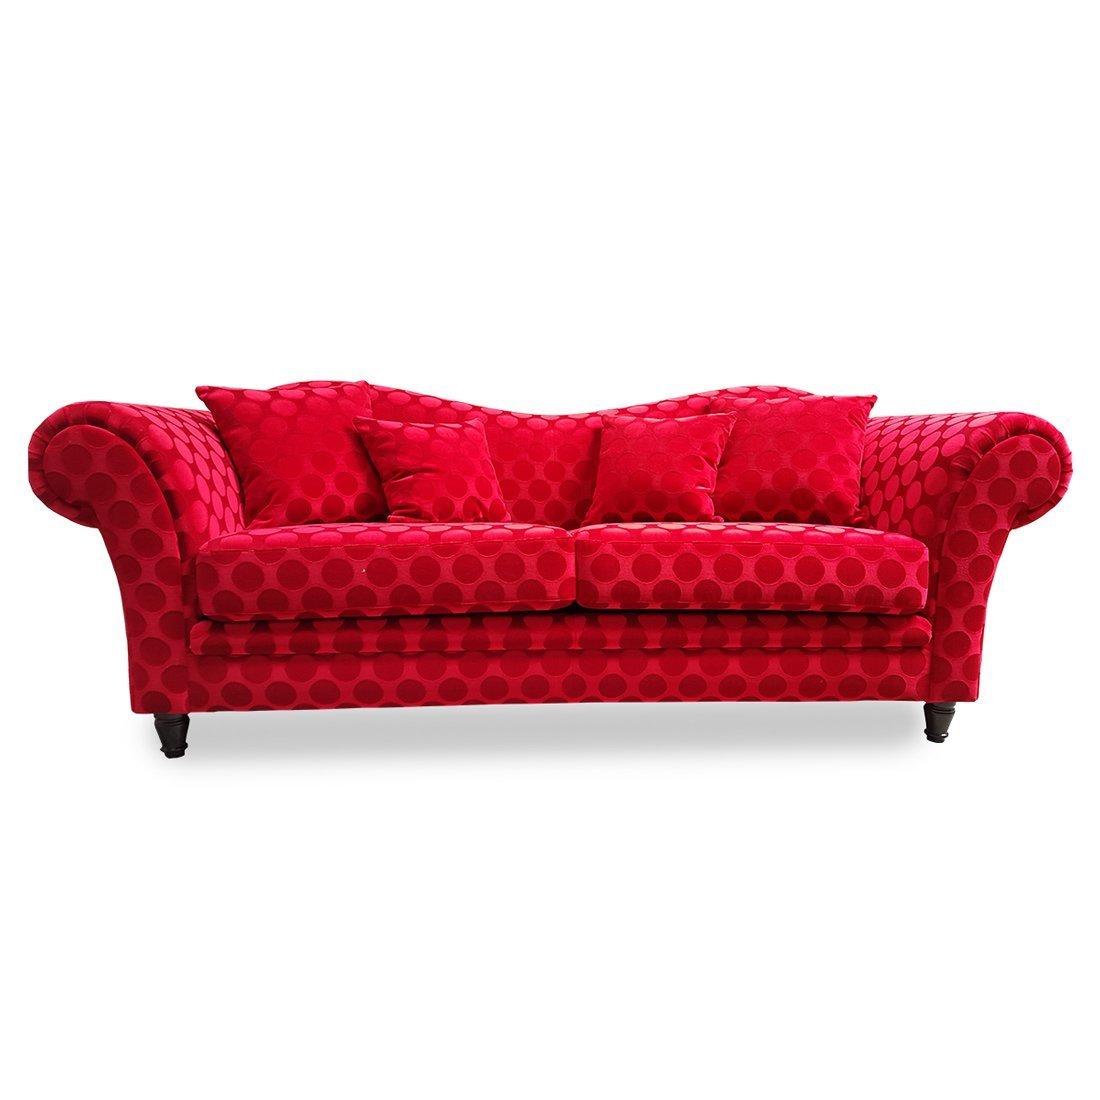 Canape chesterfield convertible max min for Chesterfield canape